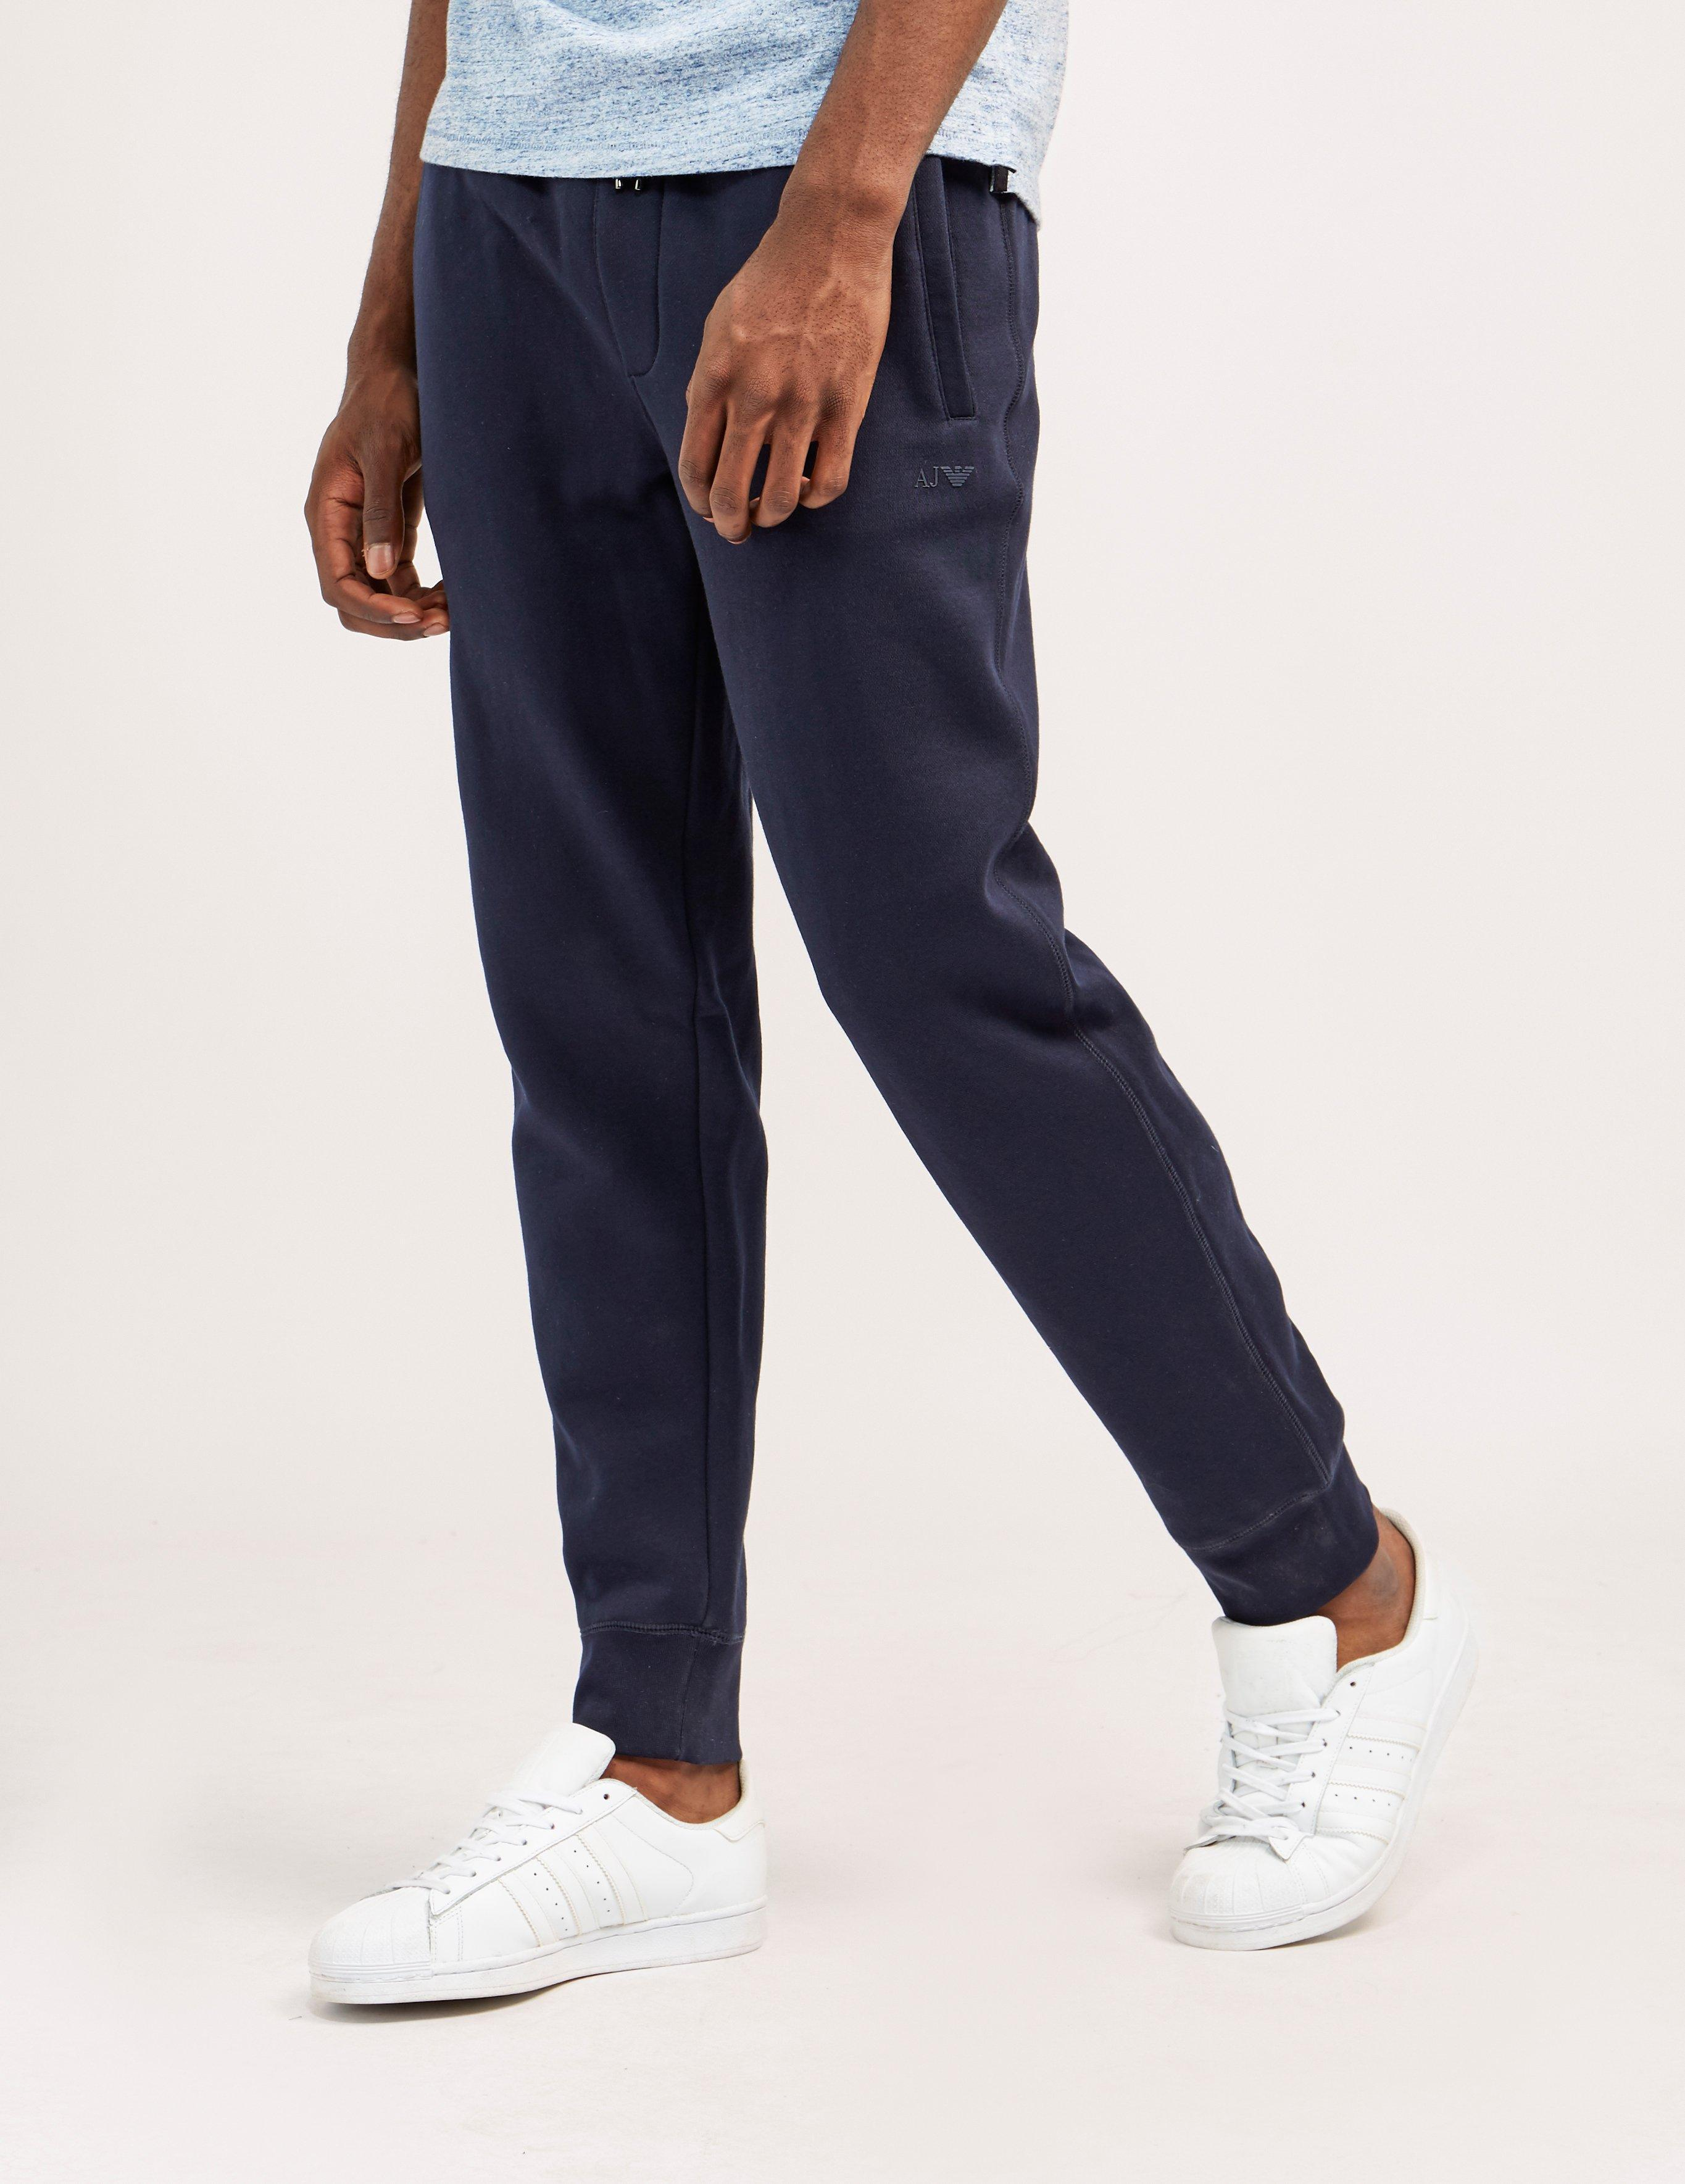 3c632d57 Armani Jeans Mens Cuffed Track Pants Navy Blue for men